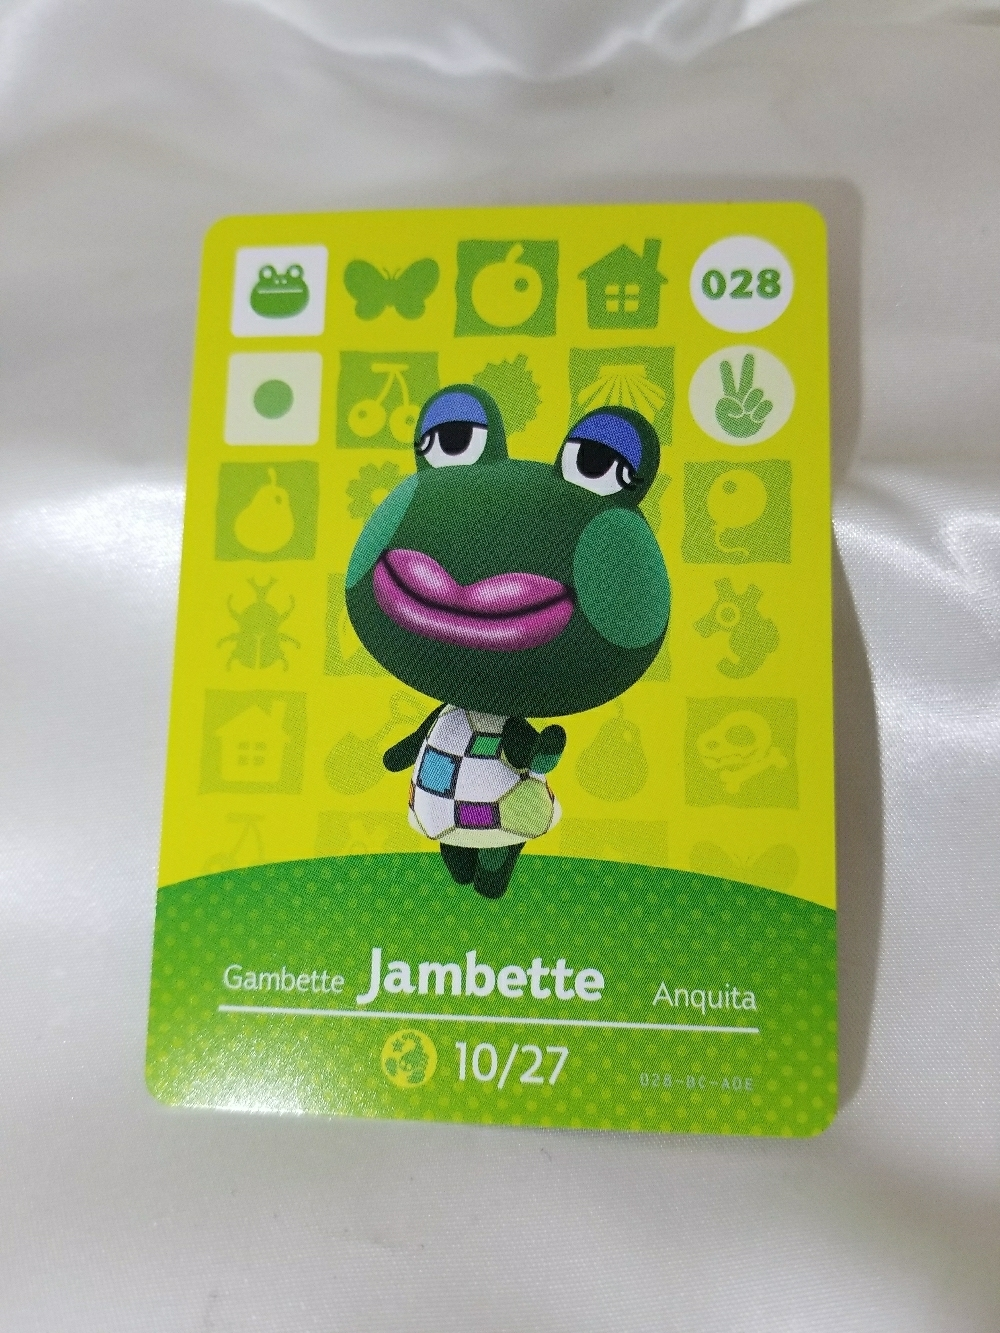 028 - Jambette - Series 1 Animal Crossing Villager Amiibo Card